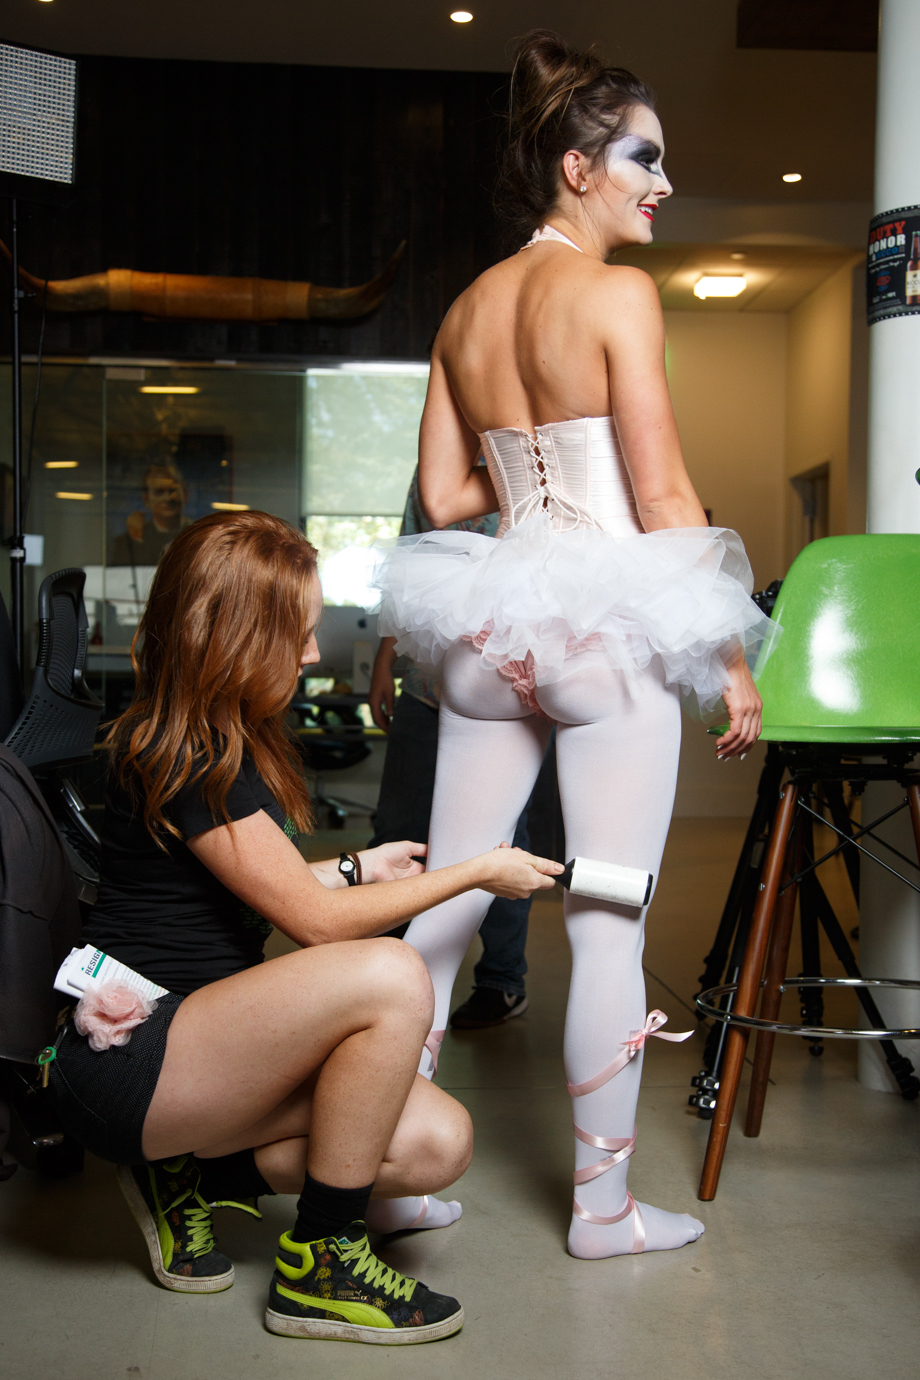 The best behind the scenes shots from theChive's Halloween shoots